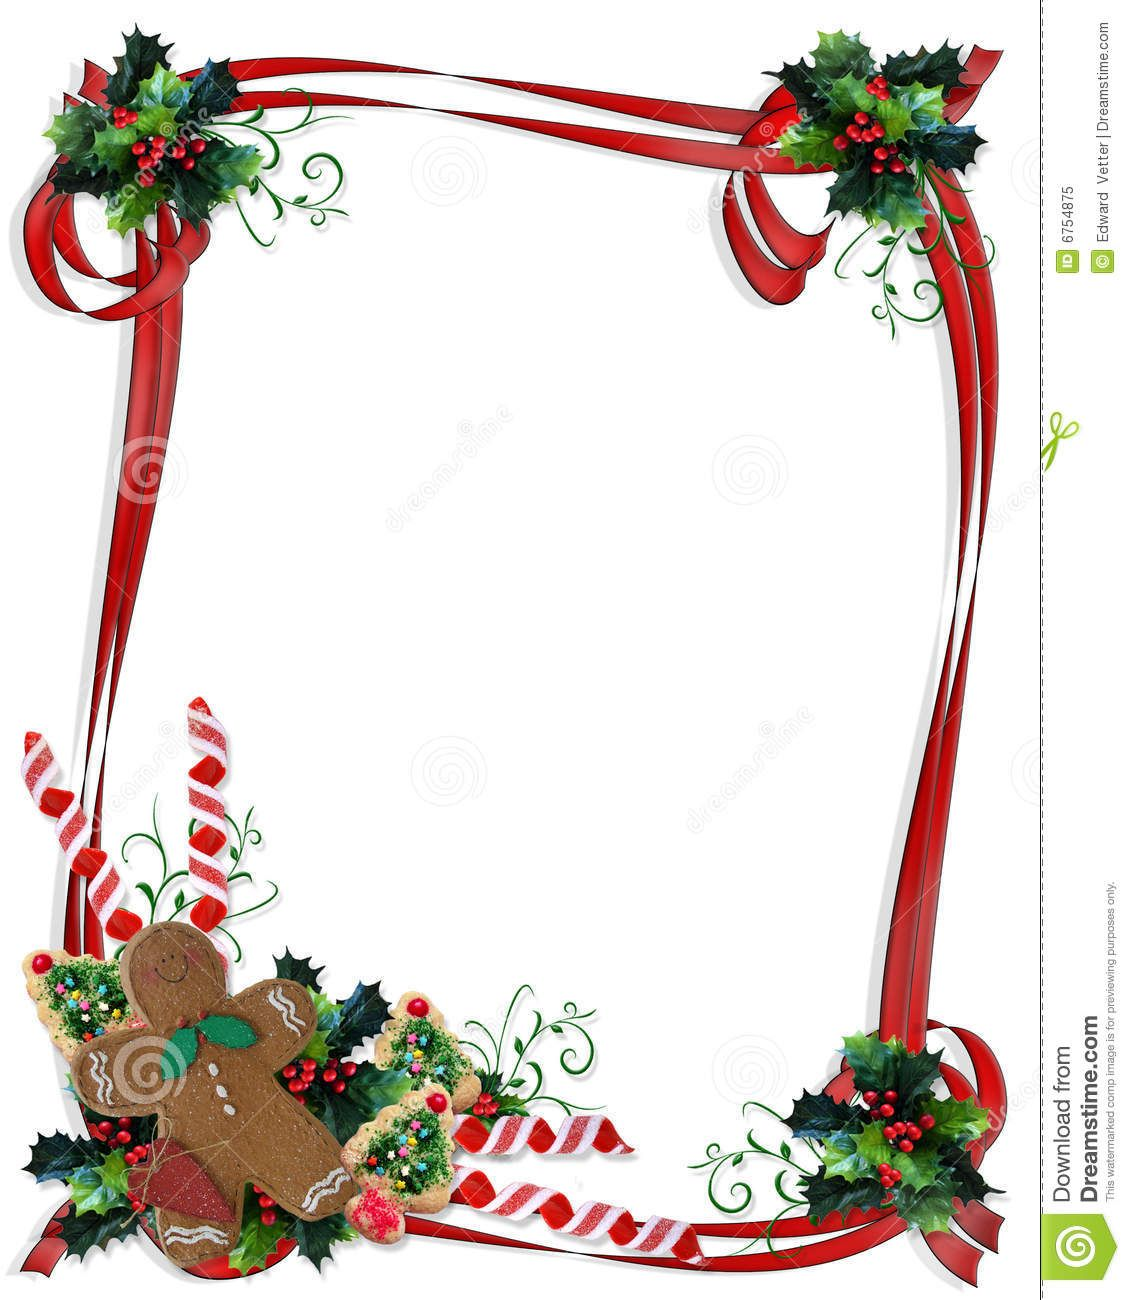 christmas frame borders  Free Christmas Cookie Border | and Illustration composition for ...